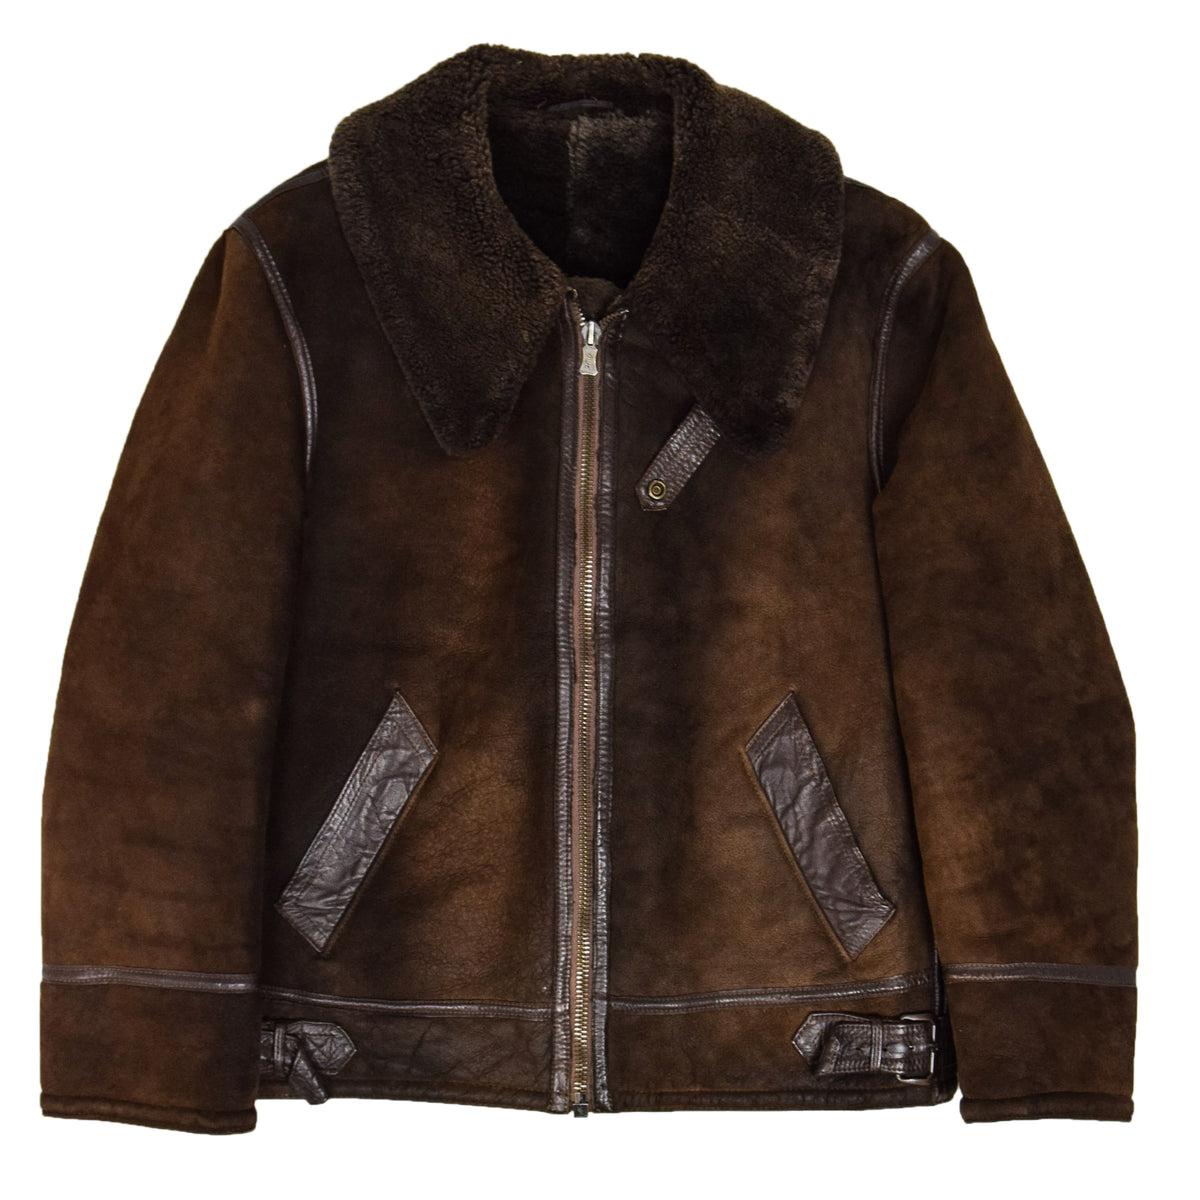 Vintage Huc Of Sweden B3 Style Shearling Sheepskin Bomber Jacket Brown L front